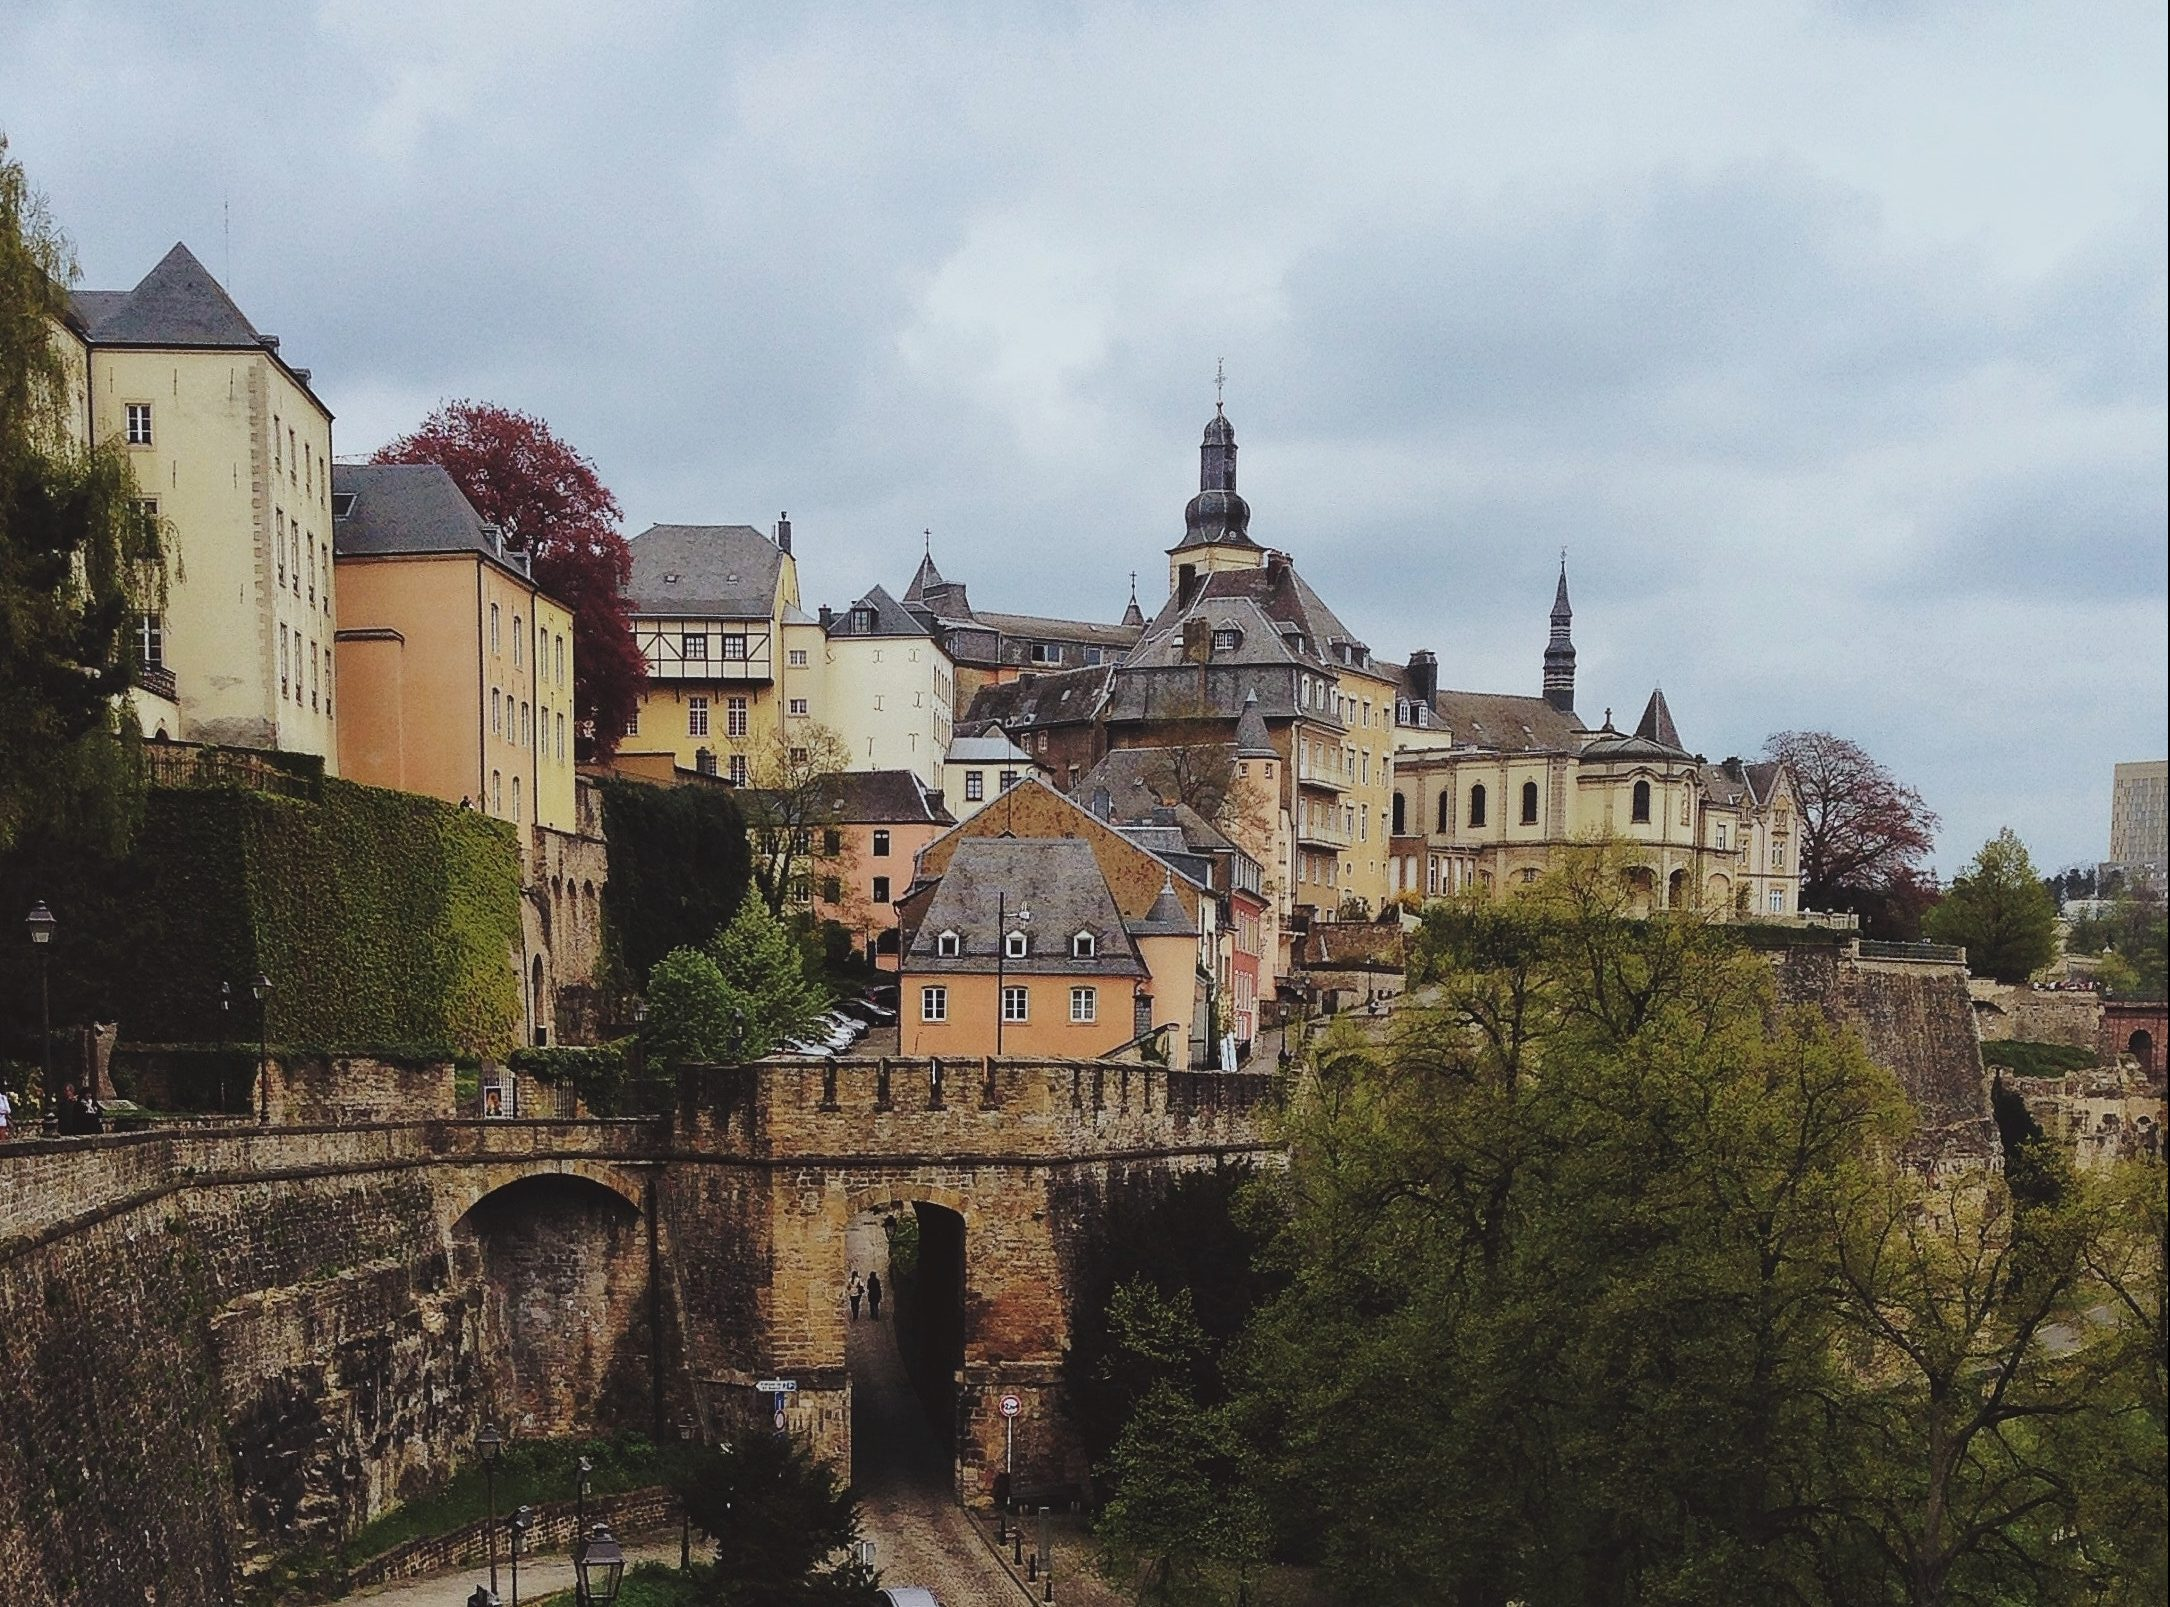 Luxembourg City - Rowan Heuvel